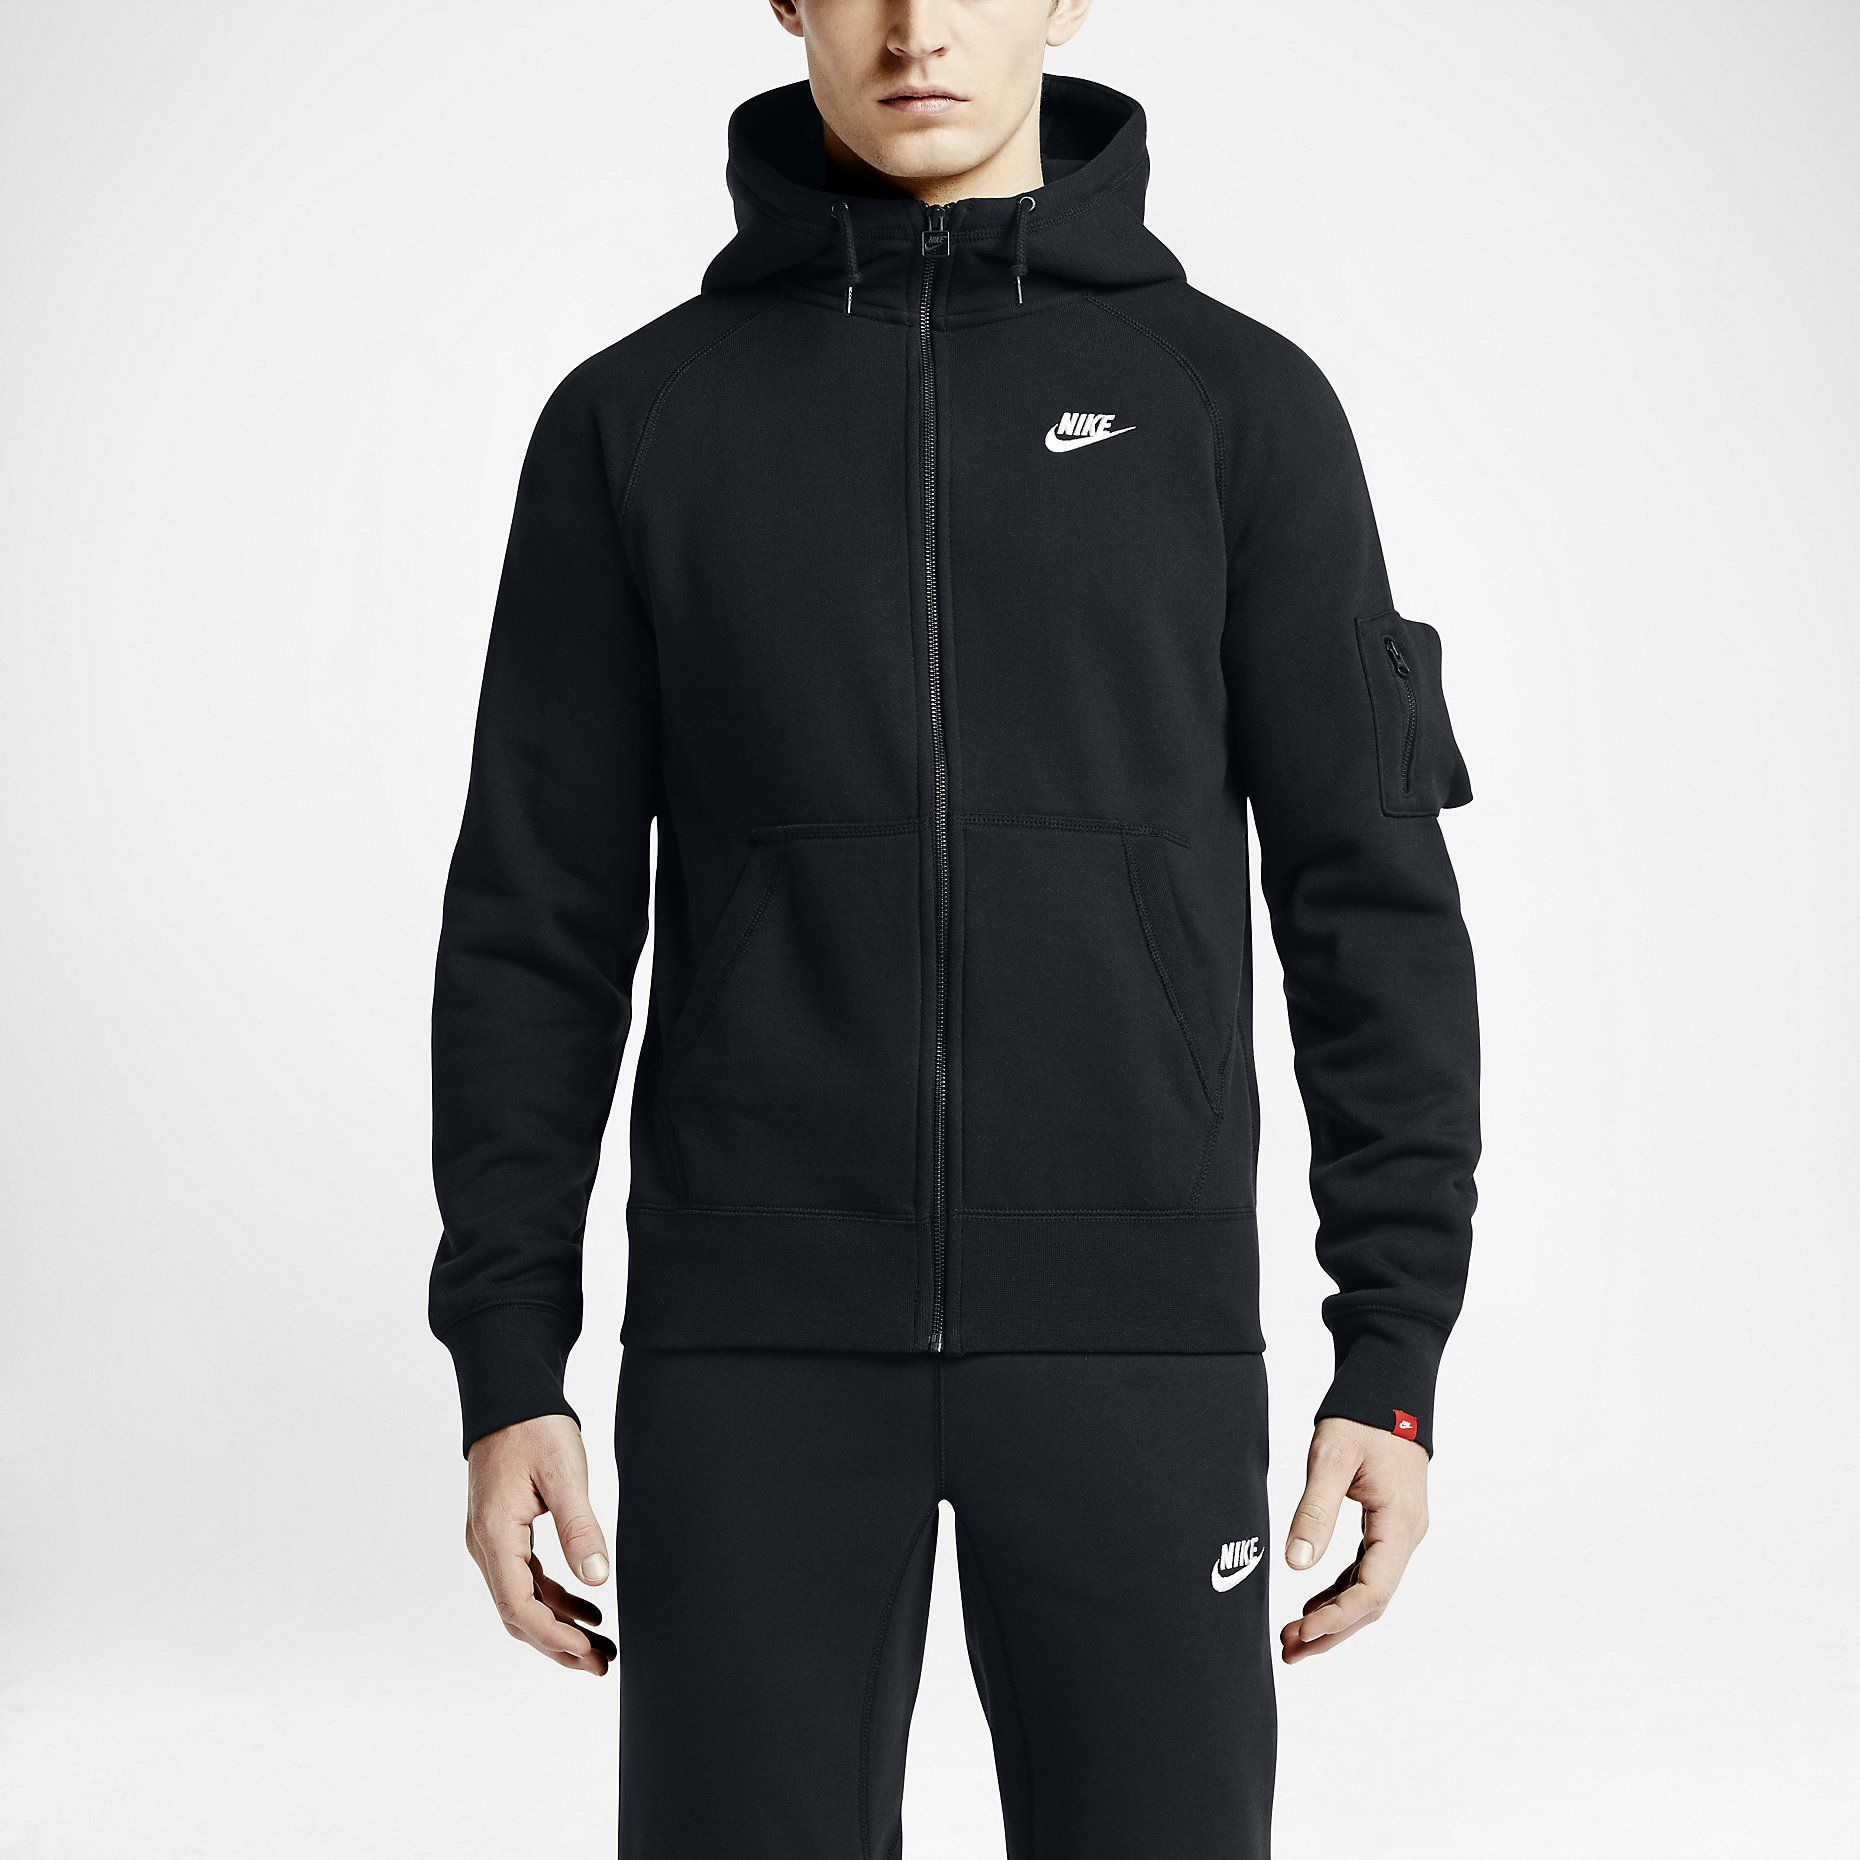 167d1657d7 Nike AW77 Fleece Full-Zip Men's Hoodie. Nike Store | Clothing ...